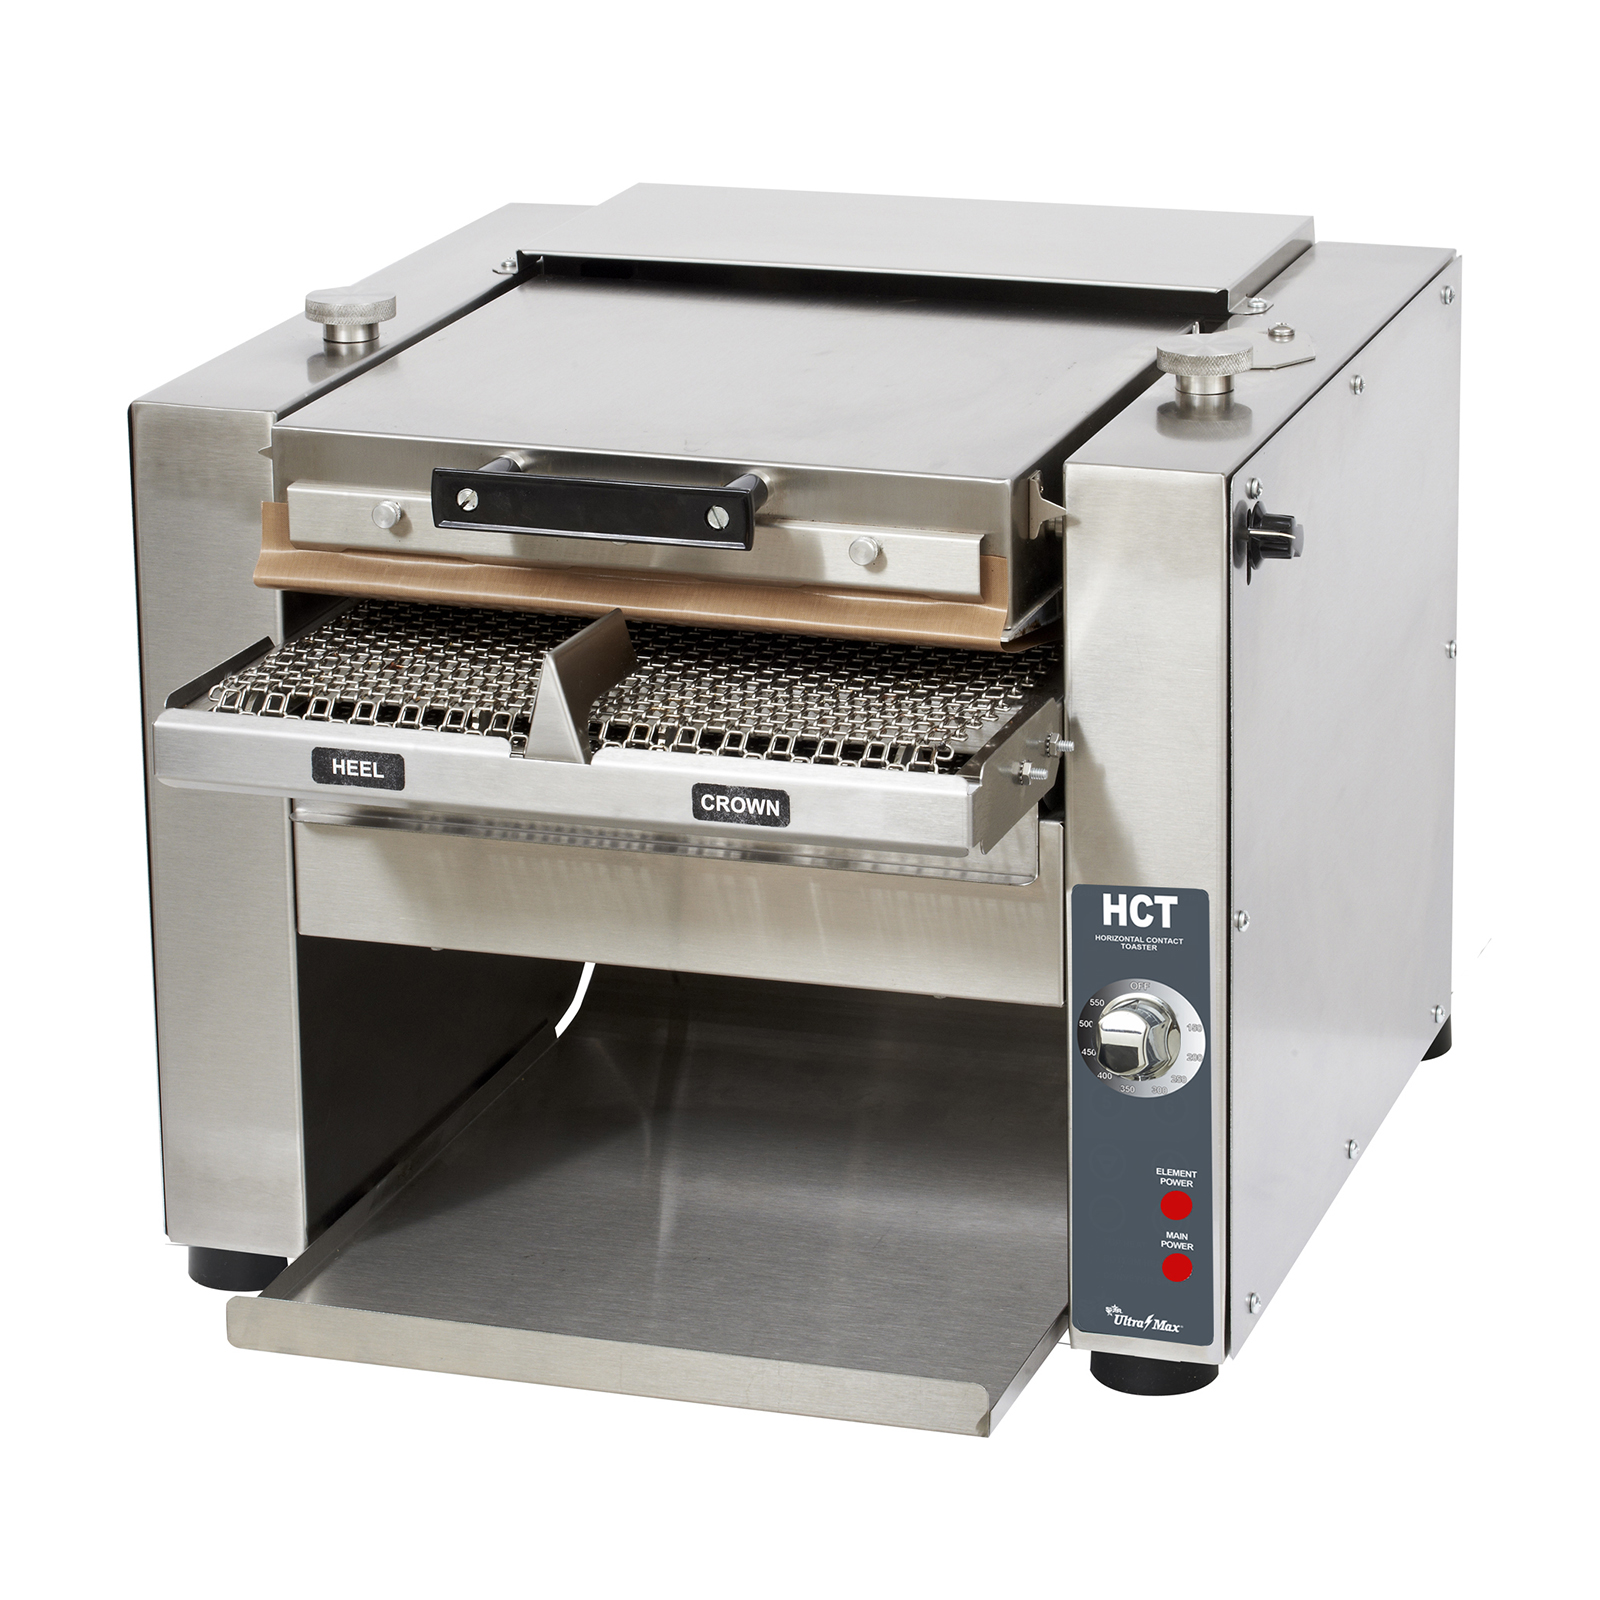 used kitchen equipment miami measuring tools star hct13m commercial contact conveyor toaster countertop